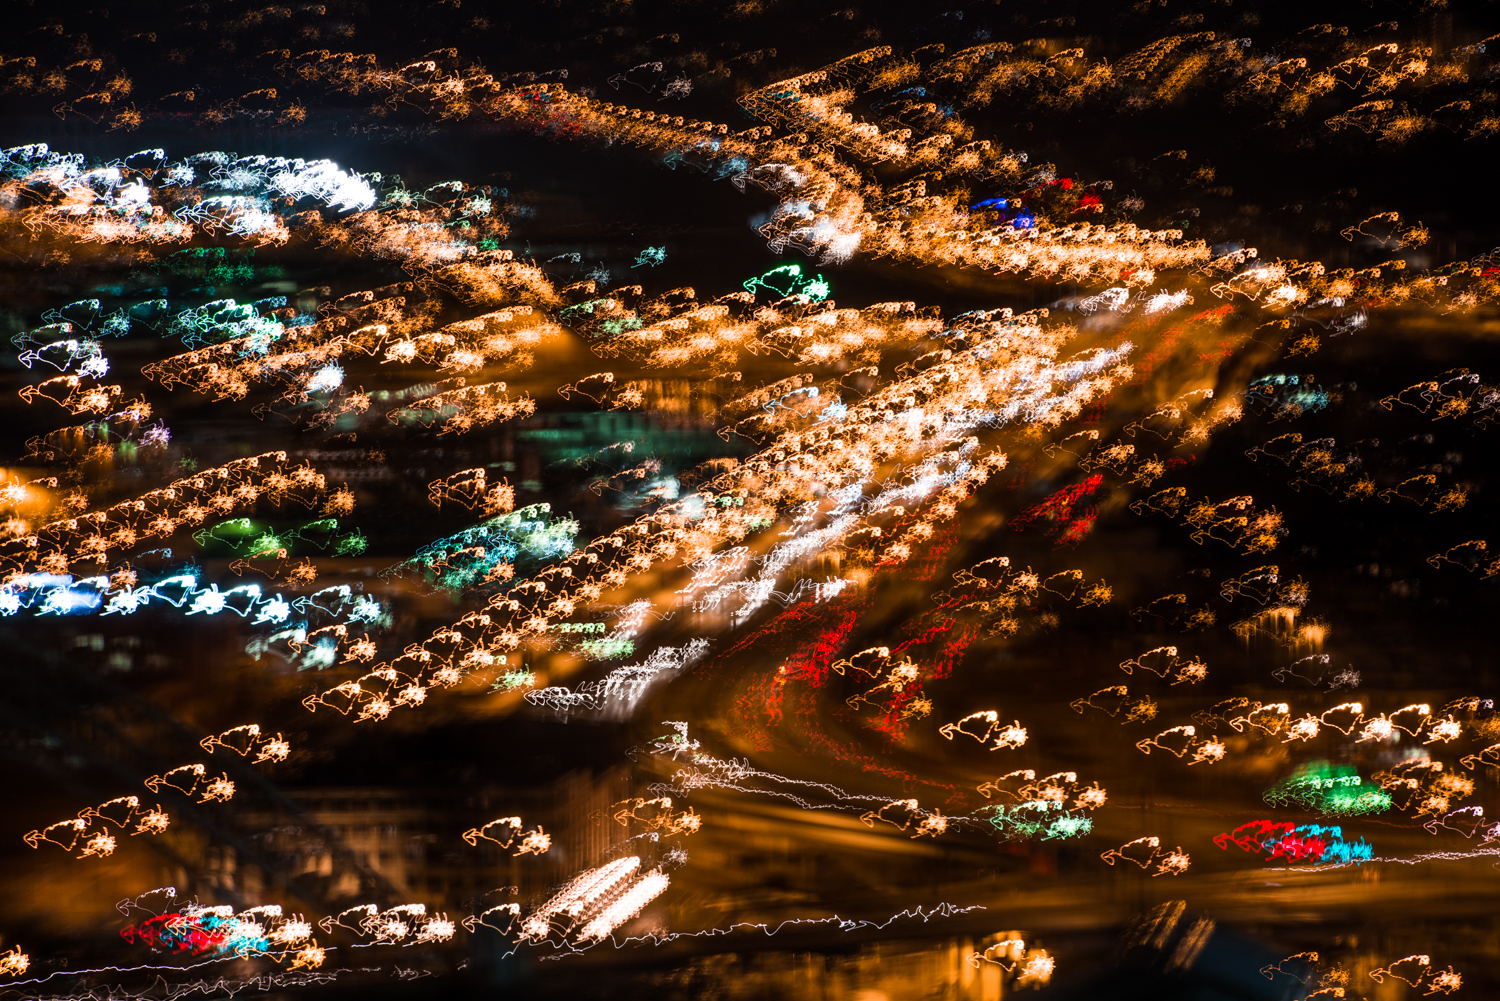 This was a goof while using the 70-200mm to reach for detail images of the city.